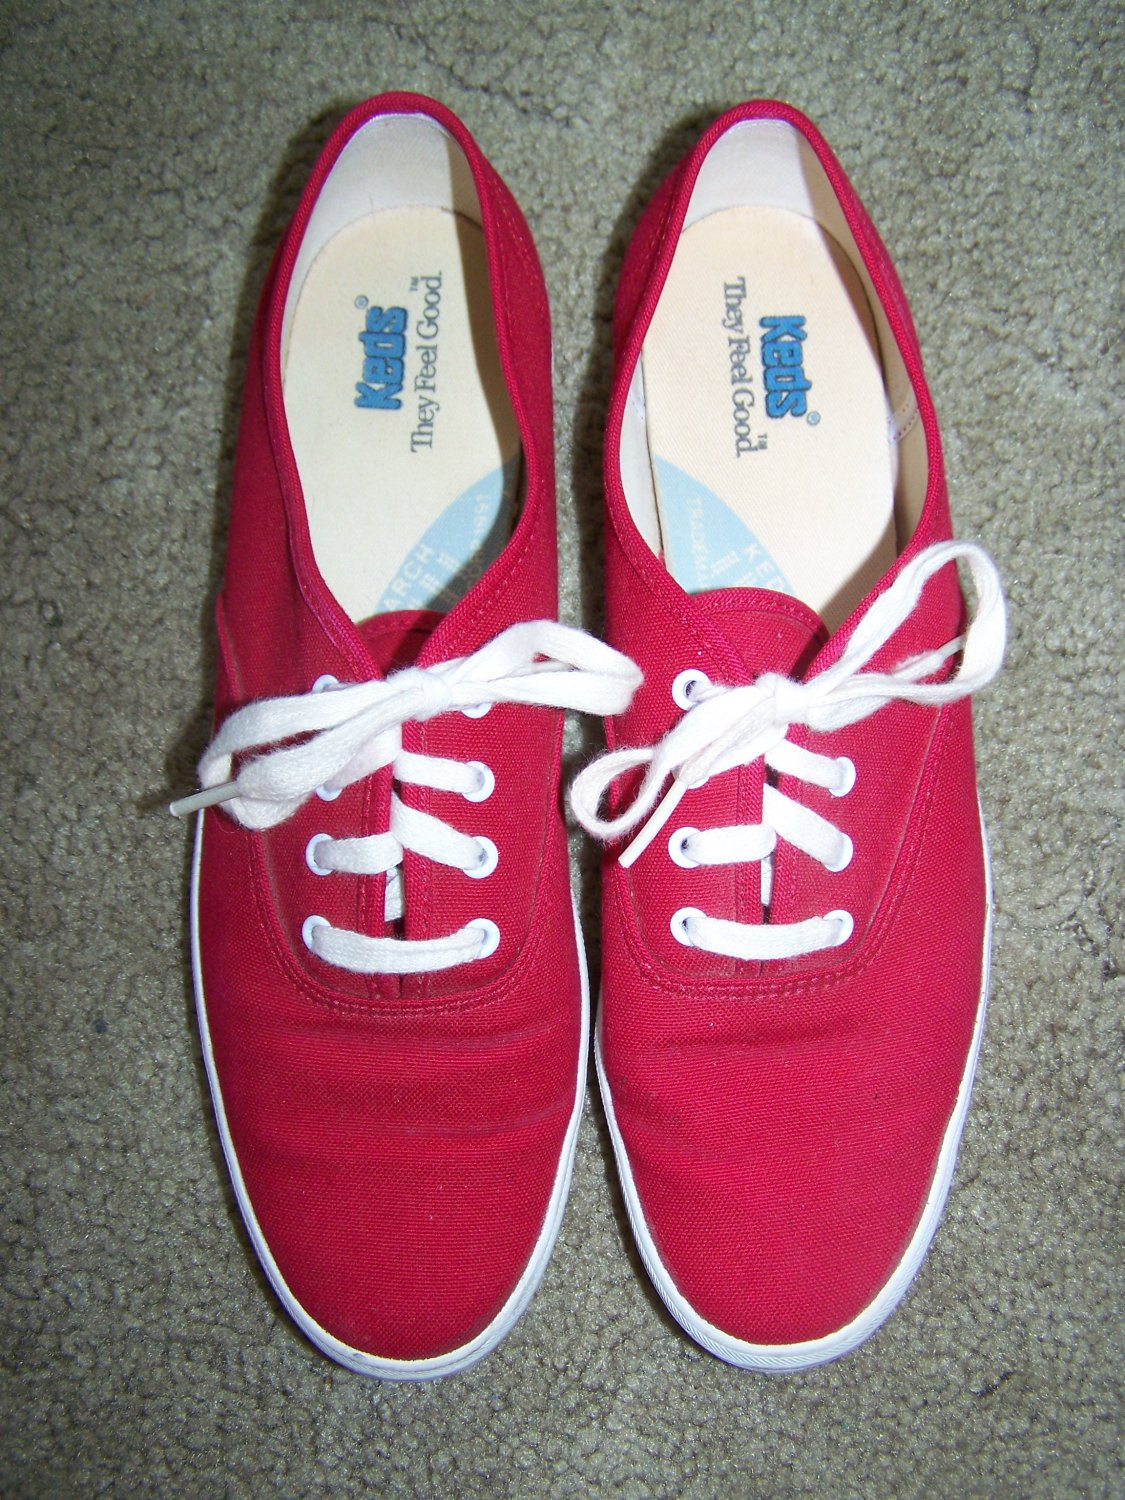 Red Vintage Keds Womens Canvas Tennis Shoes Sneakers 8.5